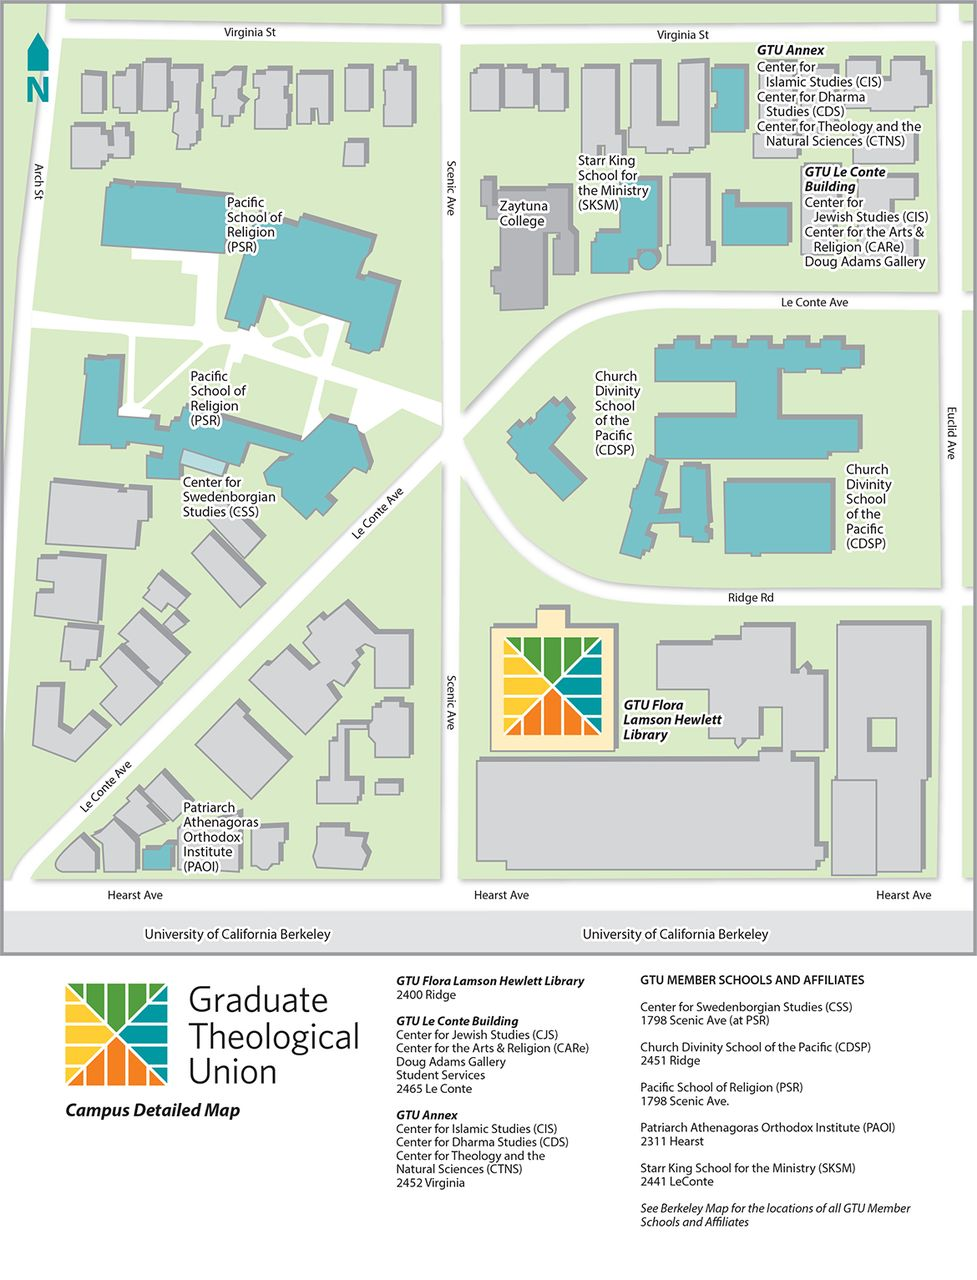 cal lutheran campus map Maps Detailed Campus Map Graduate Theological Union cal lutheran campus map